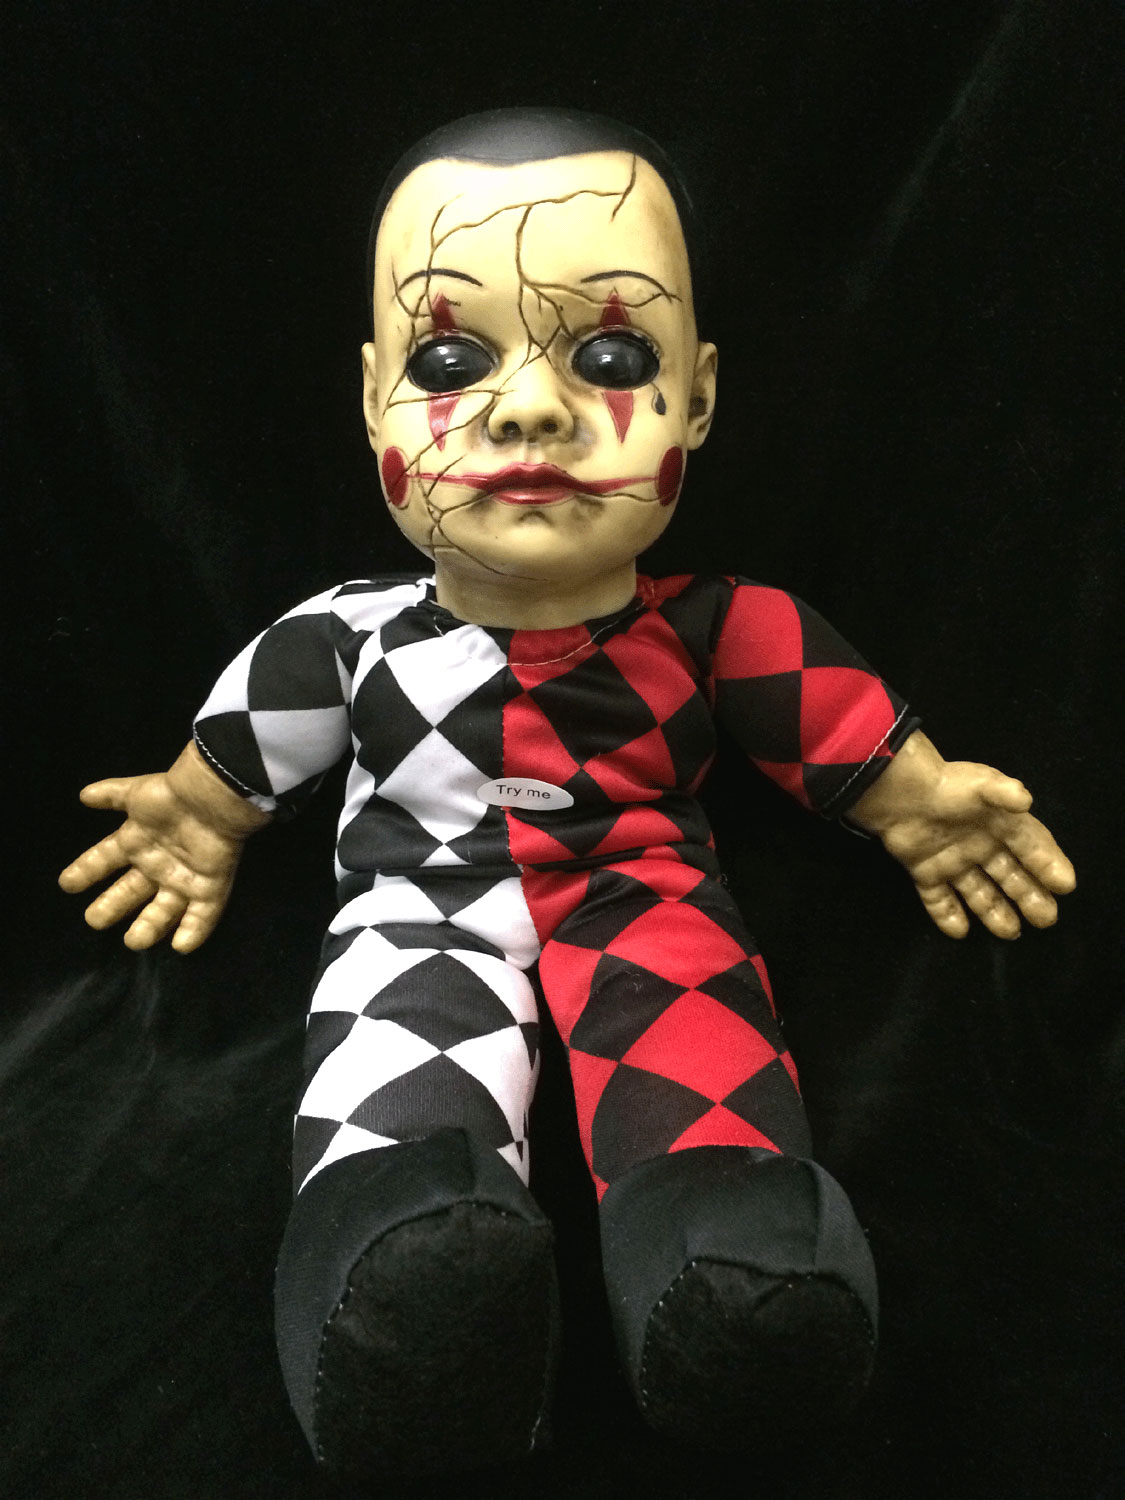 haunted dolls zombie babies creepy undead baby halloween props 34